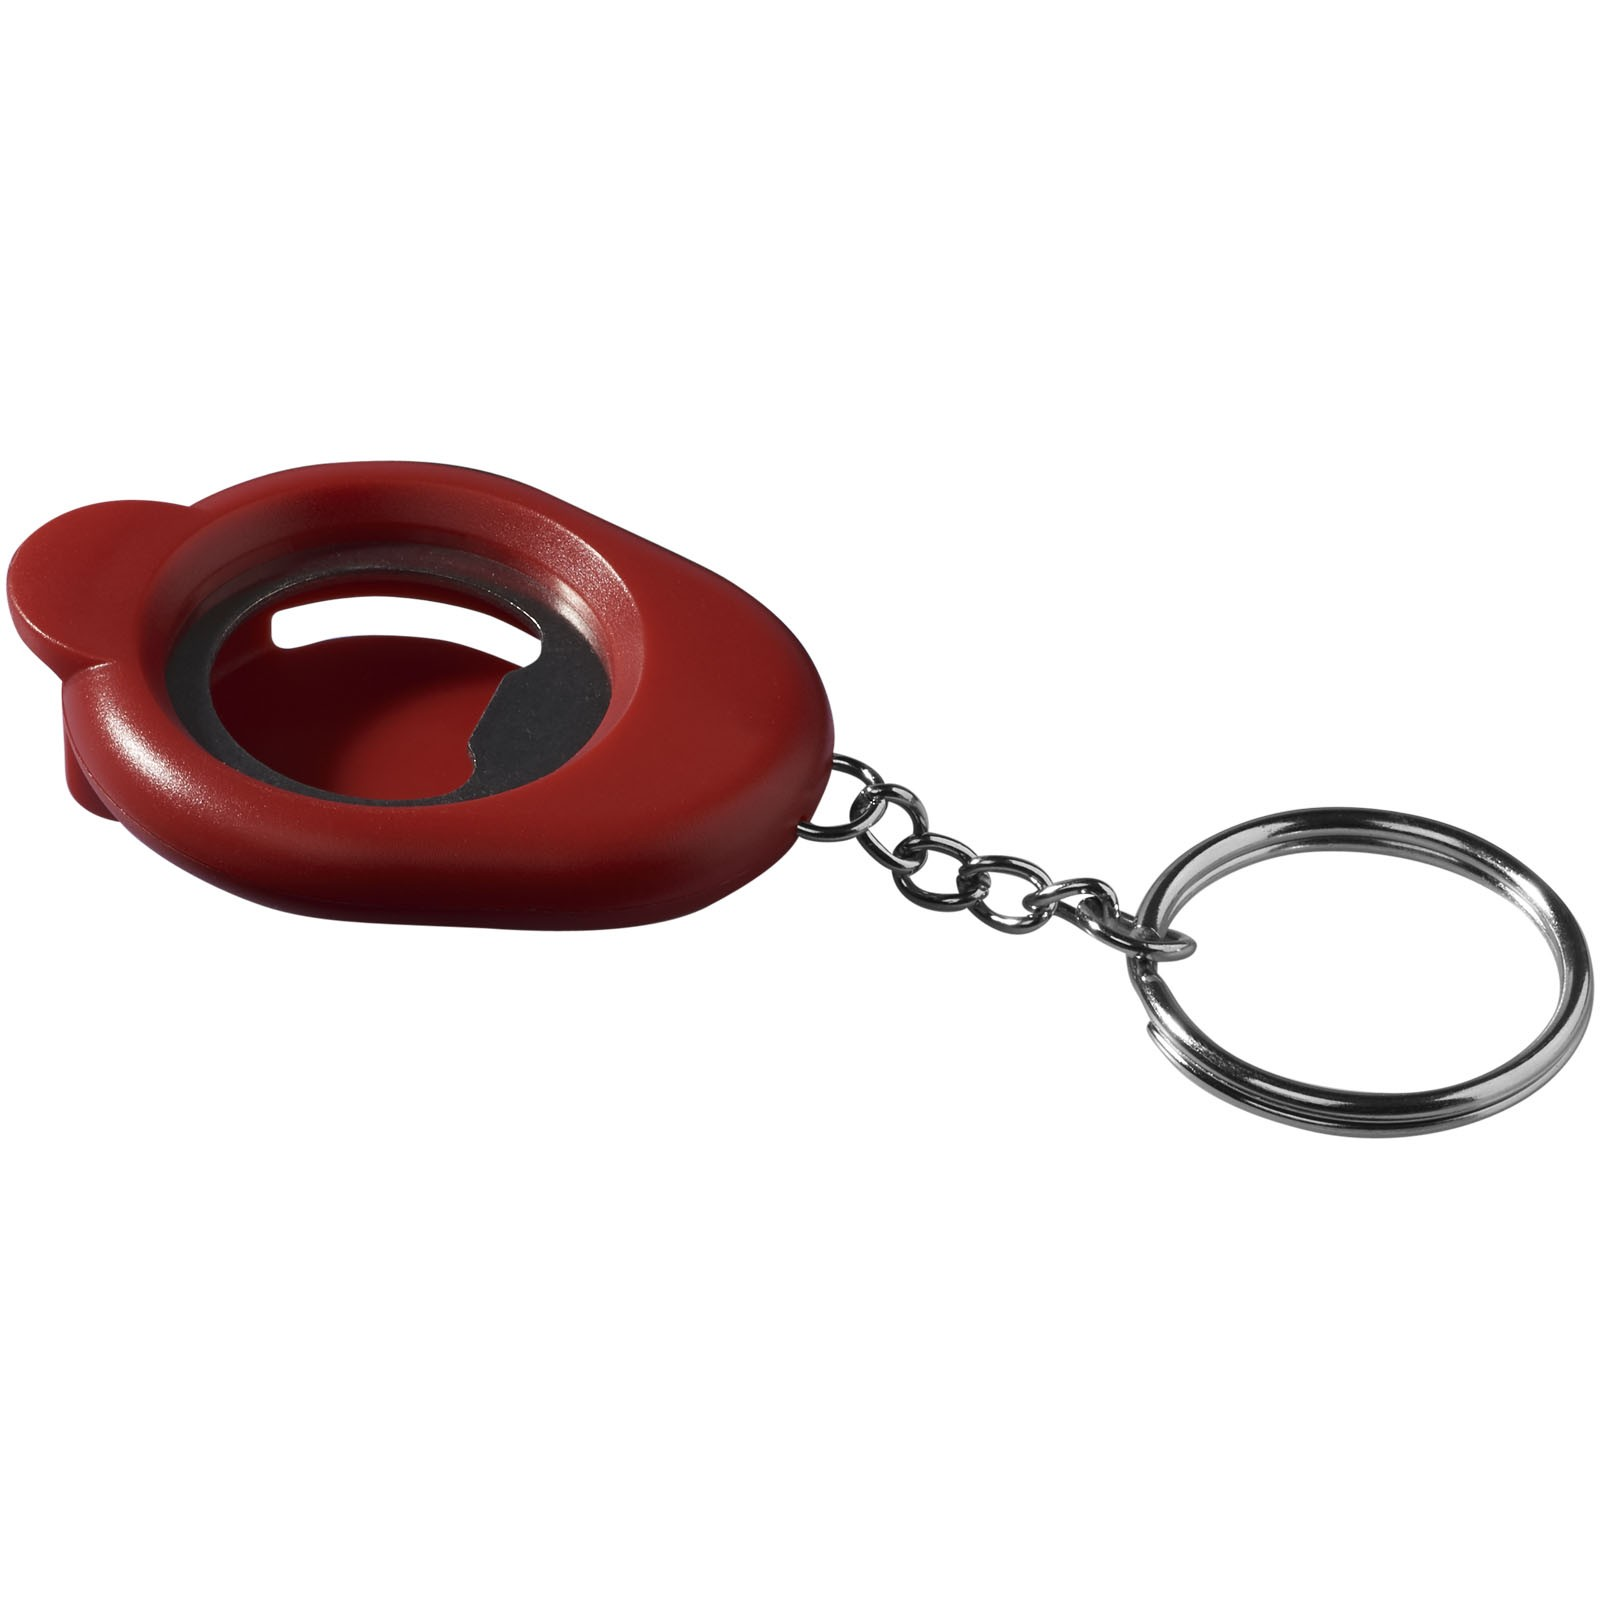 Cappi bottle opener key chain - Red